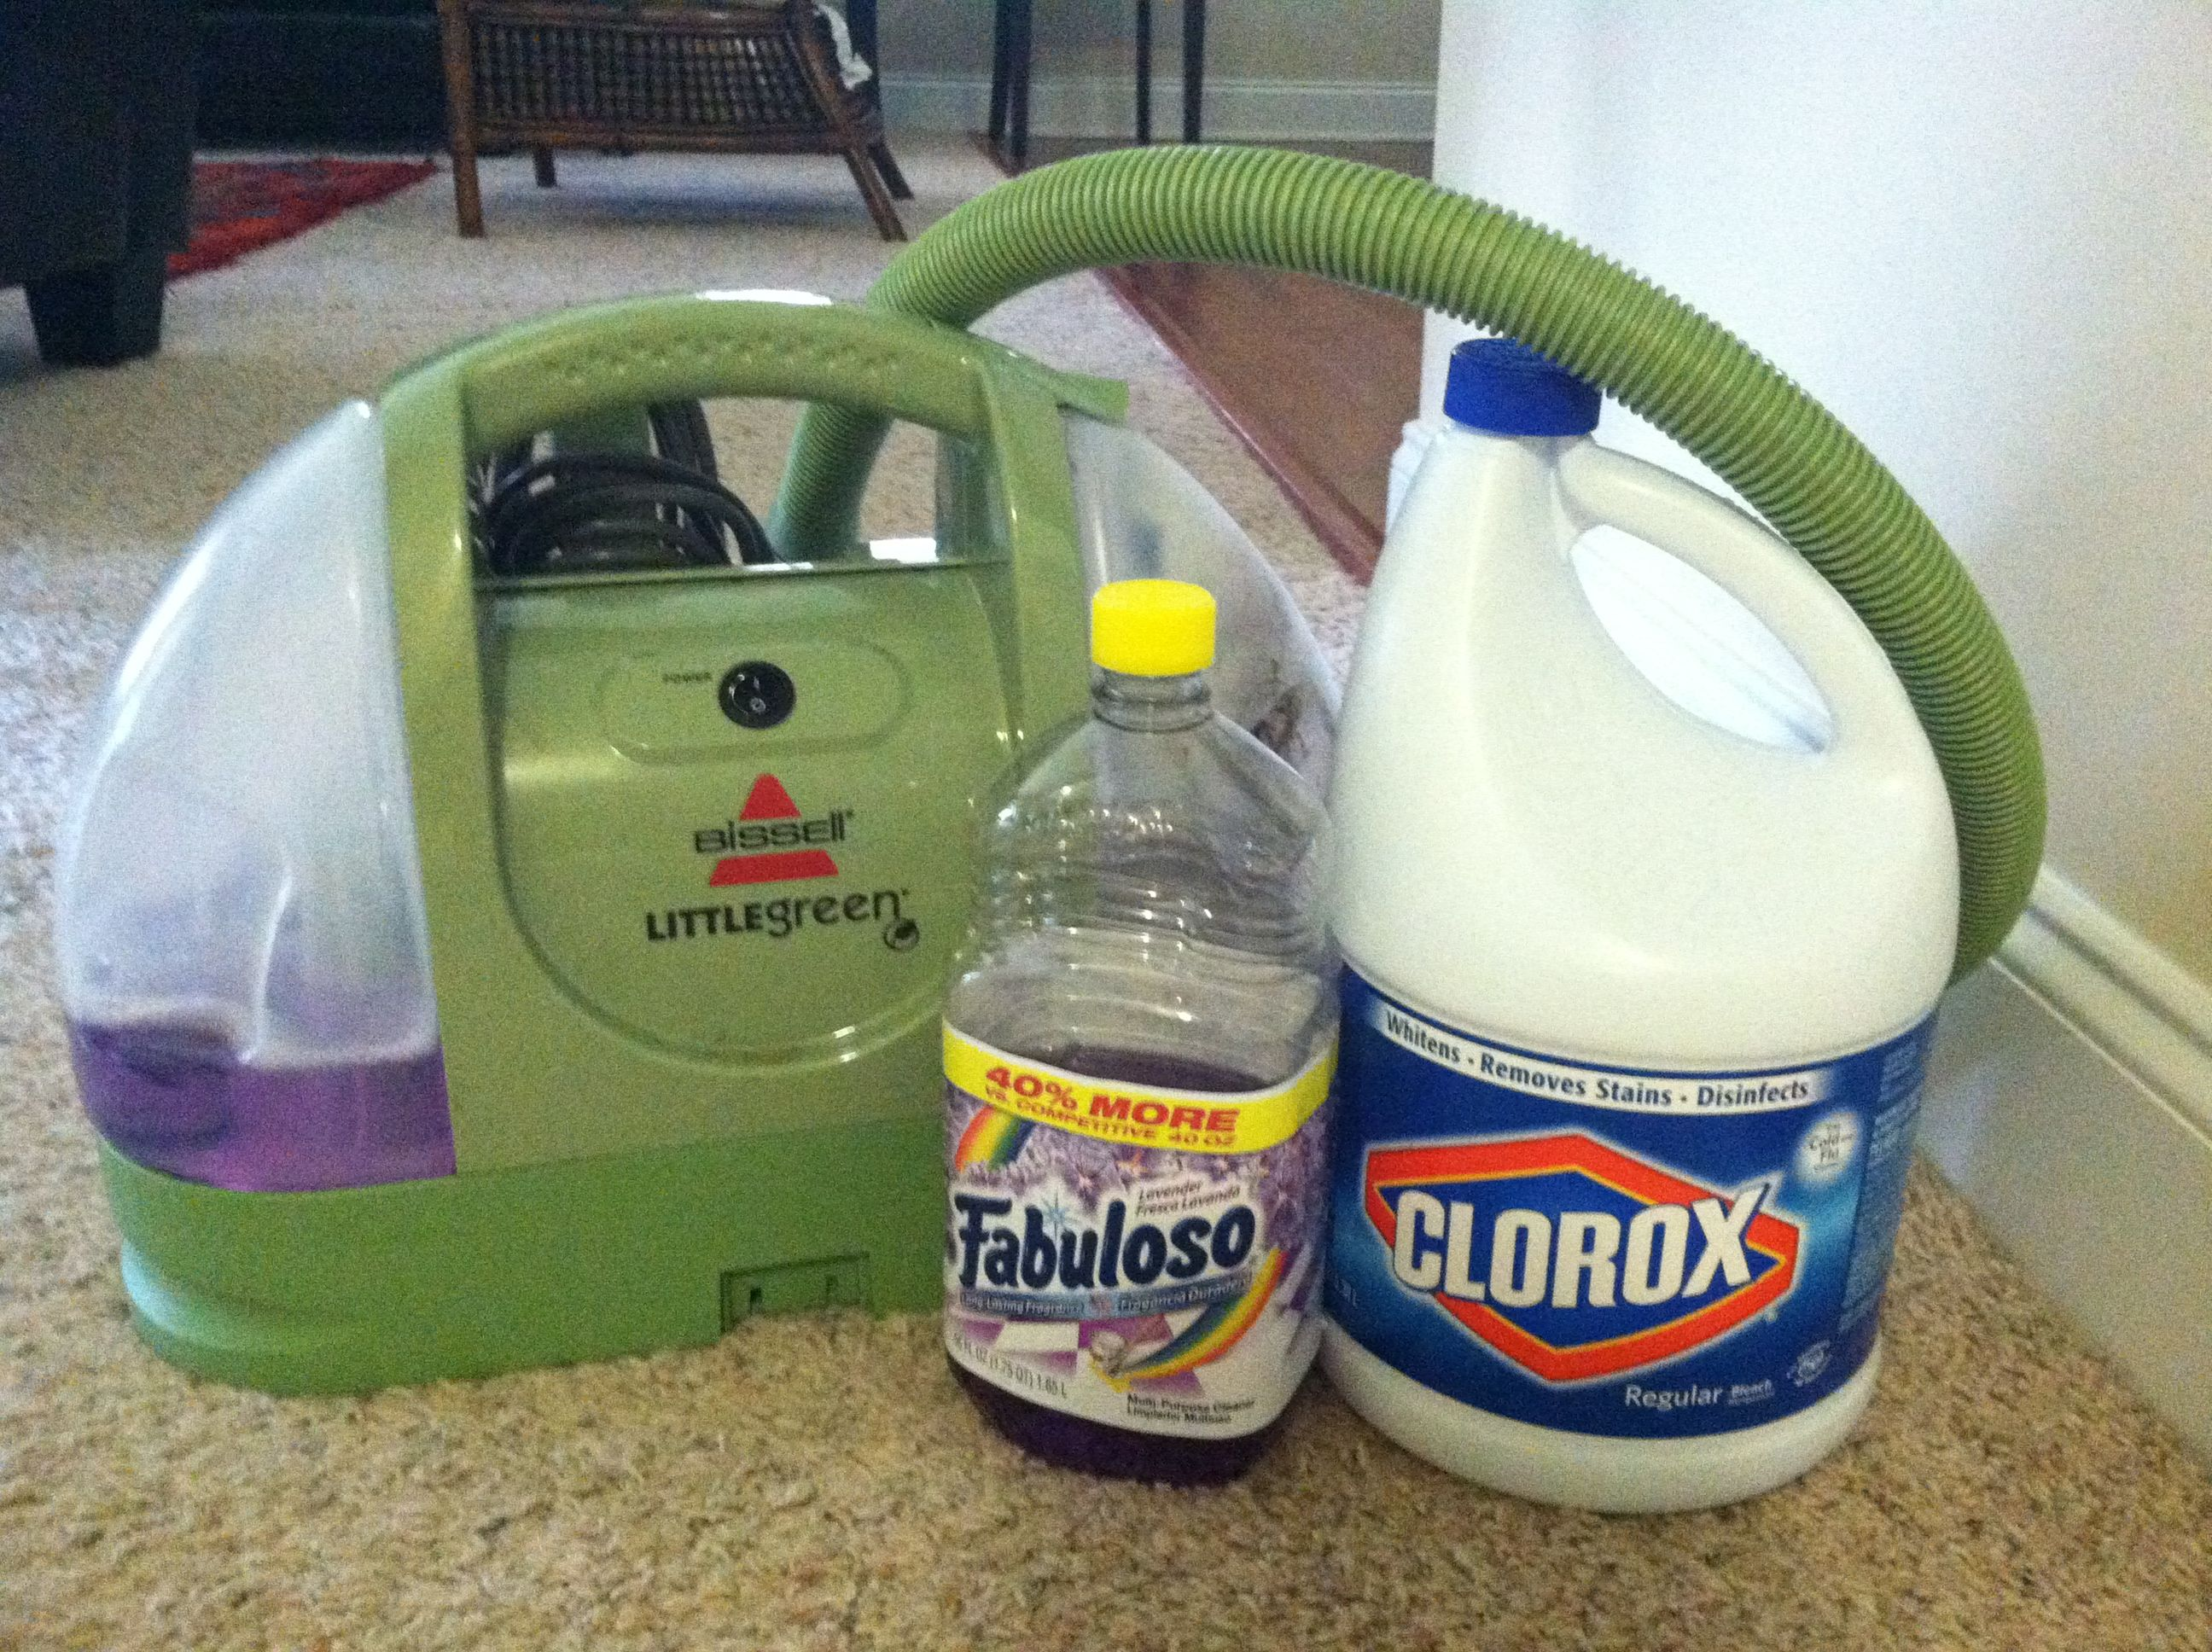 Fabuloso air freshener diy sweepstakes